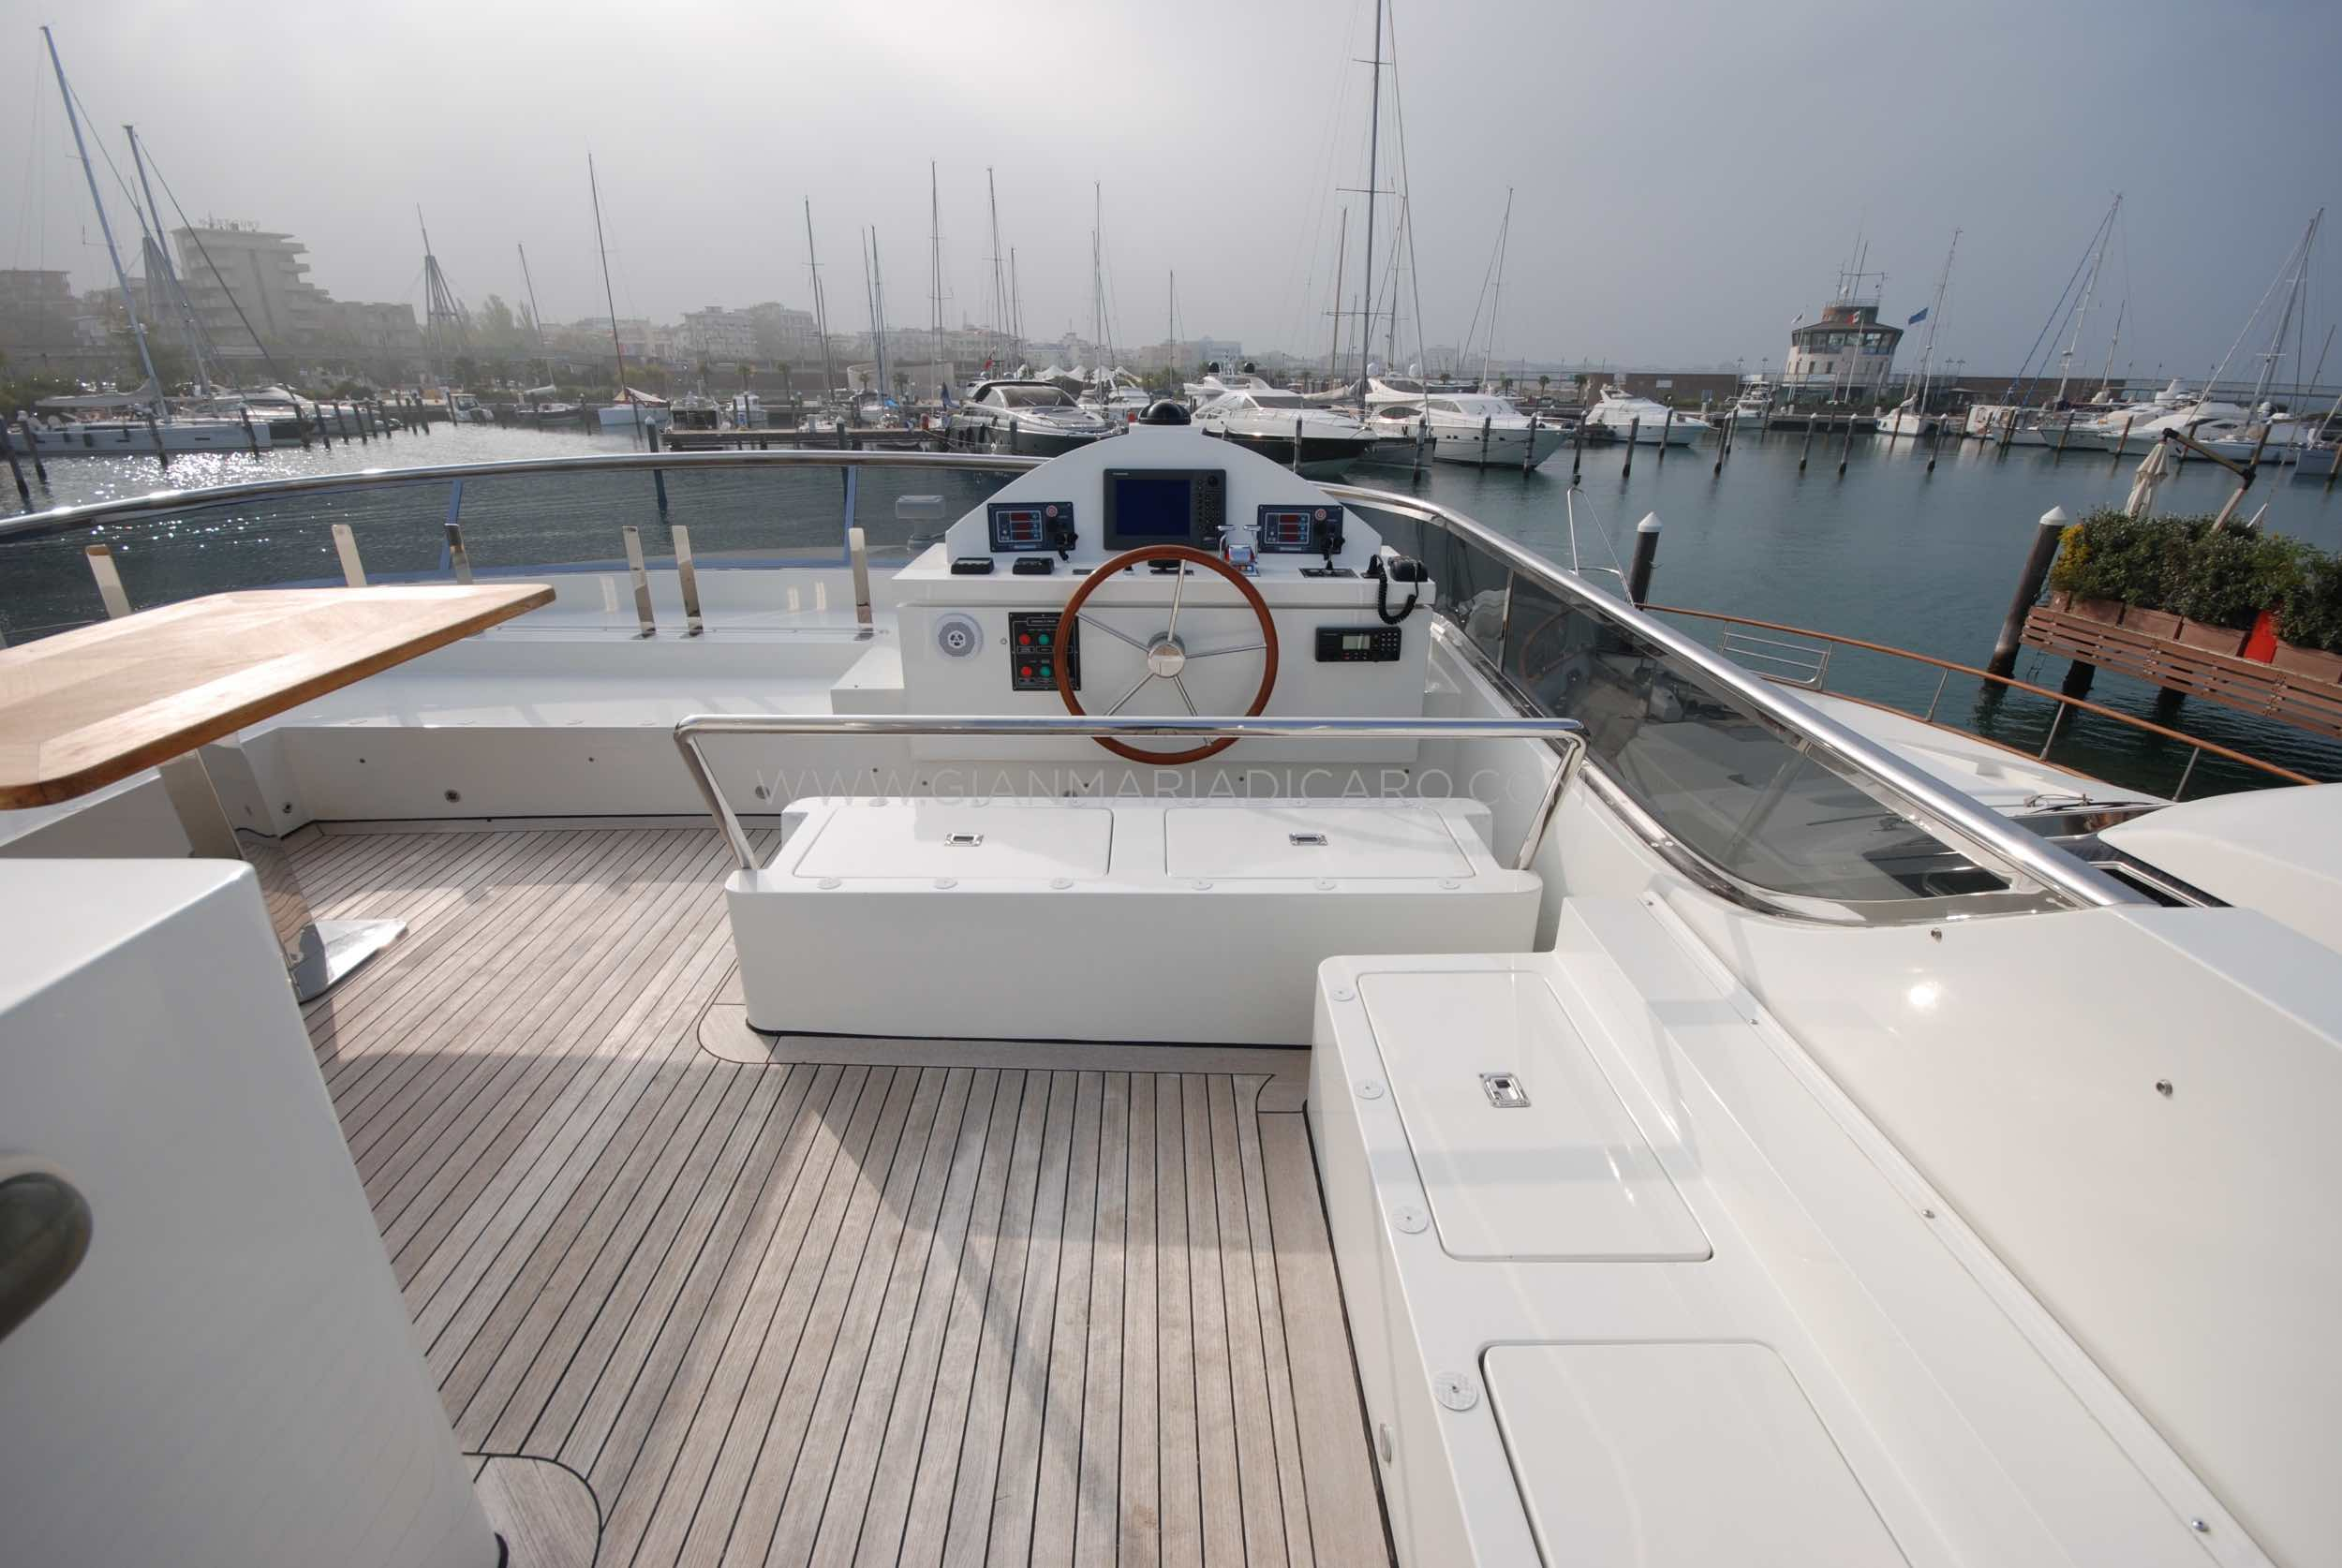 emys-yacht-22-unica-for-sale-92.jpg